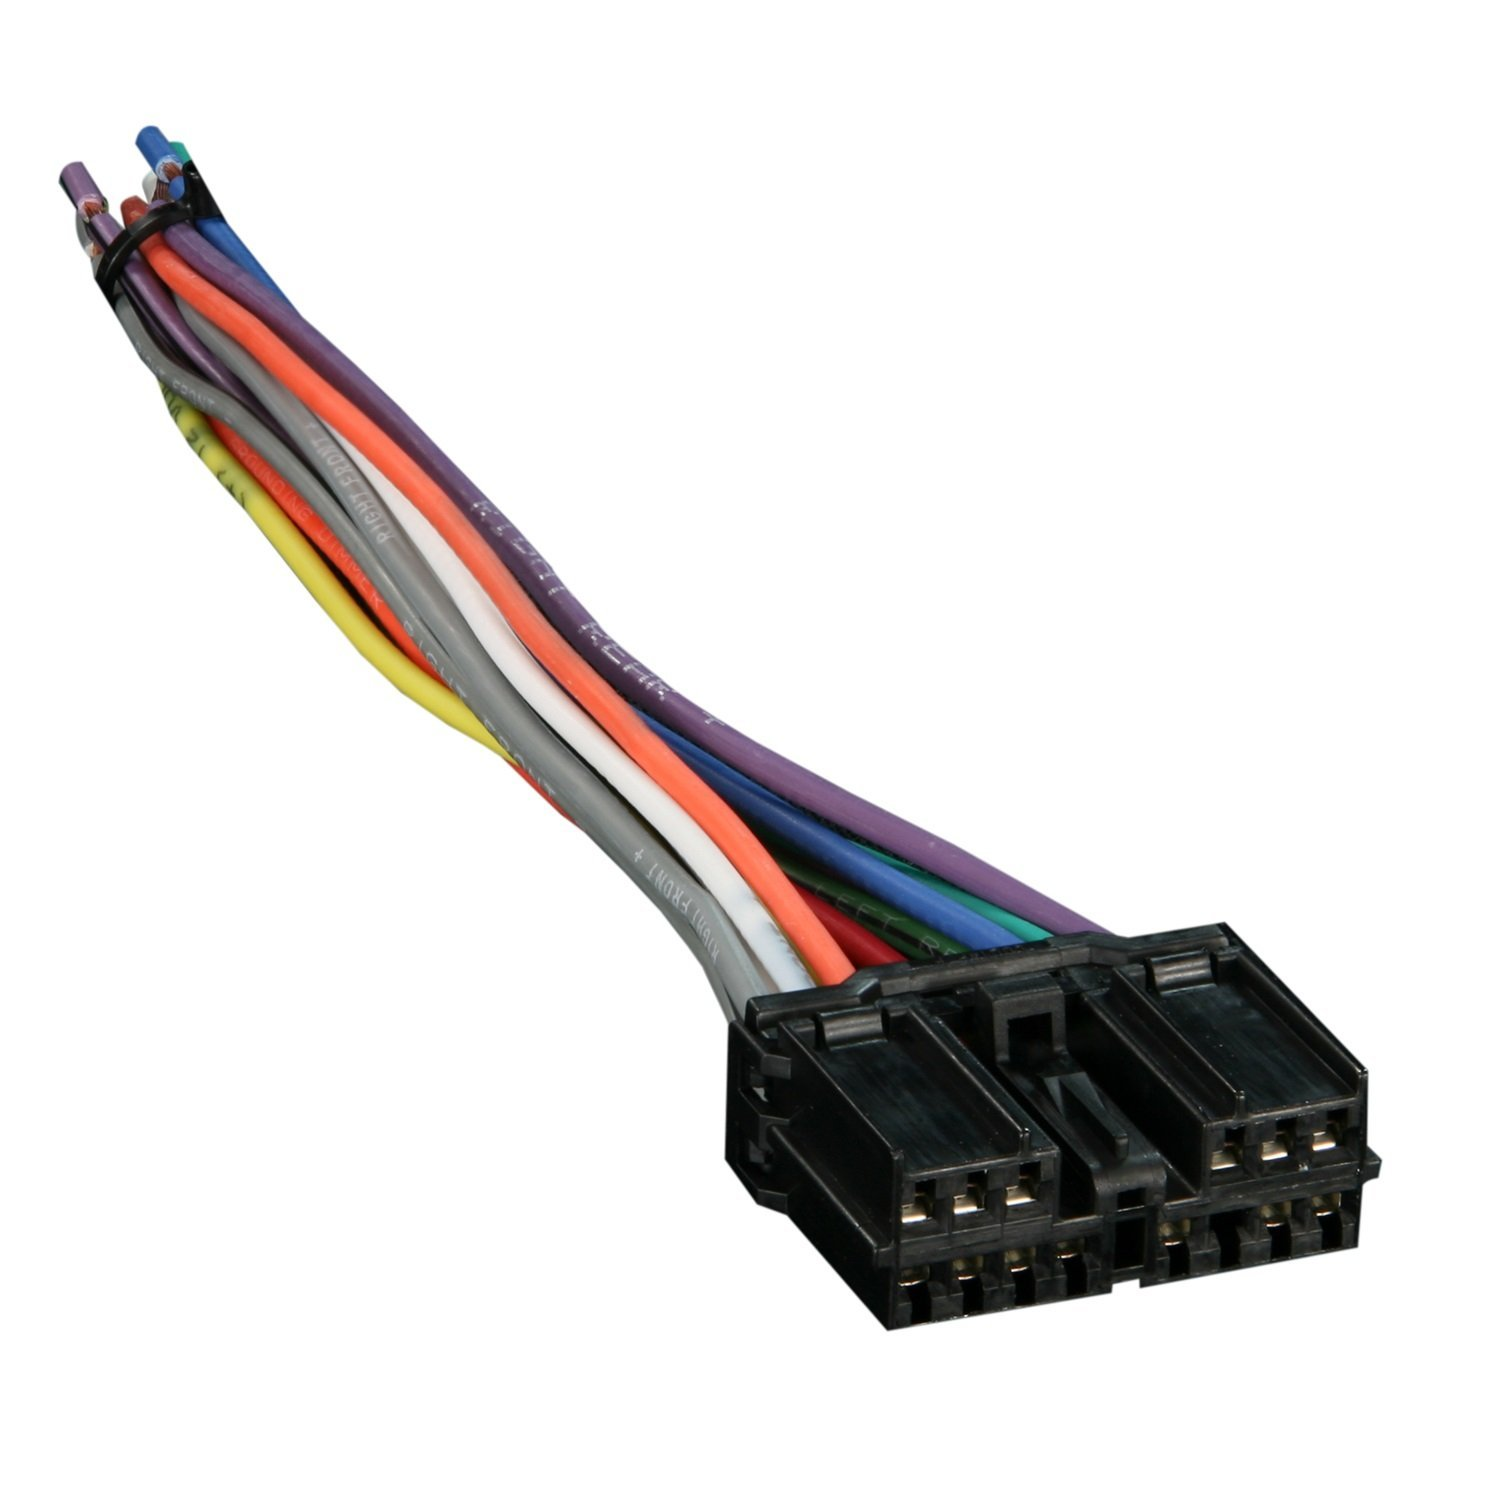 Reverse Wiring Harness 71-7001 for Select 1995-up Chrysler, Dodge,  Mitsubishi Vehicles OEM Radio By Metra Ship from US - Walmart.com